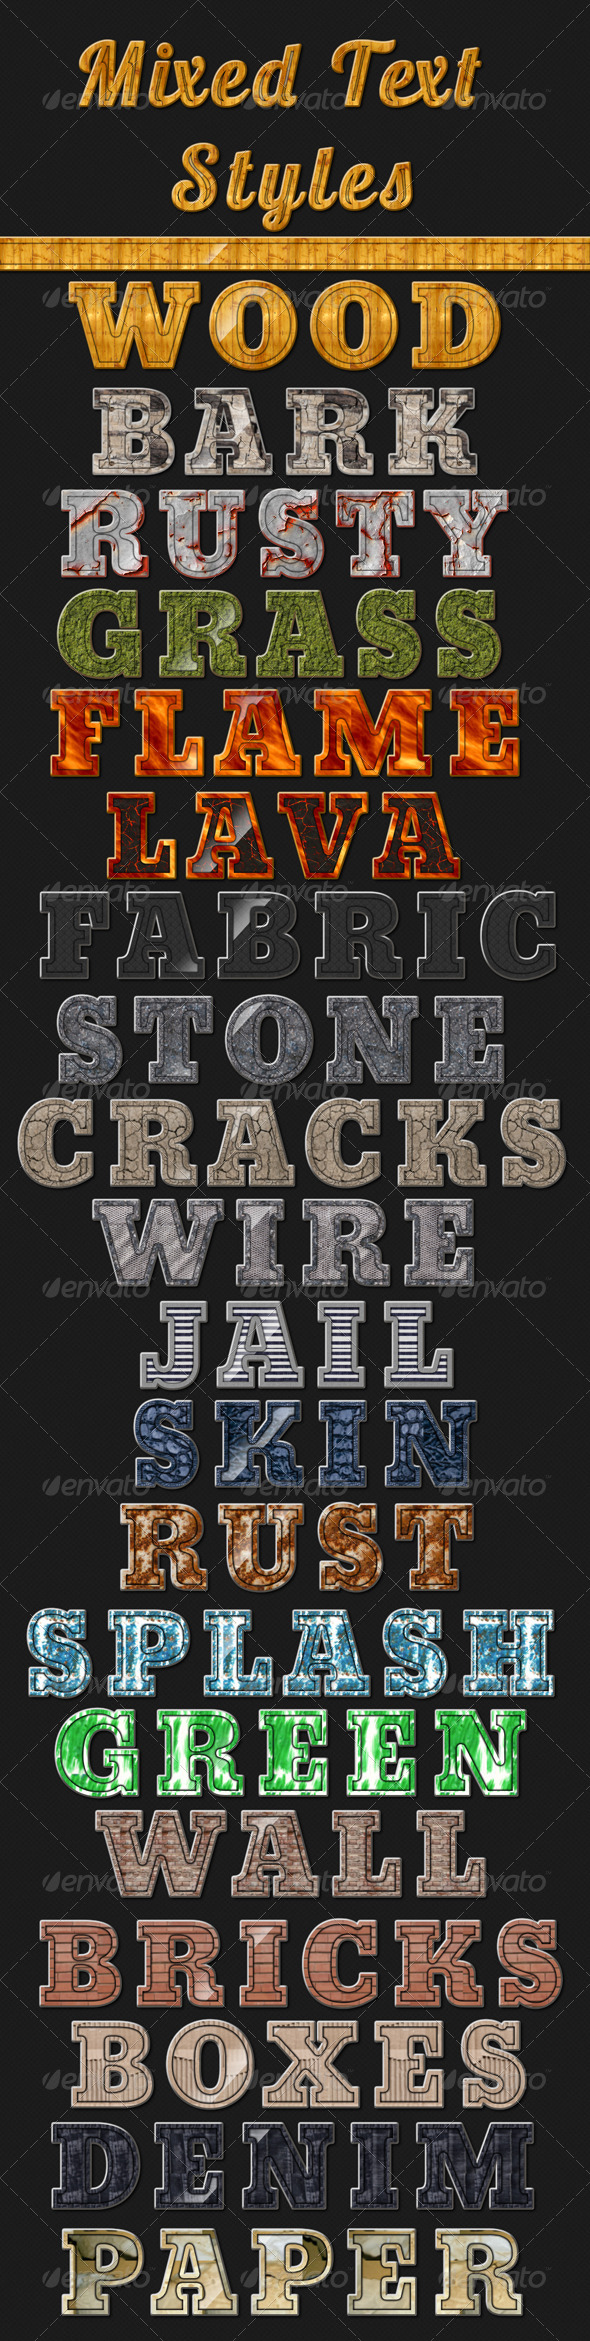 GraphicRiver 20 Mixed Text Styles 6671532